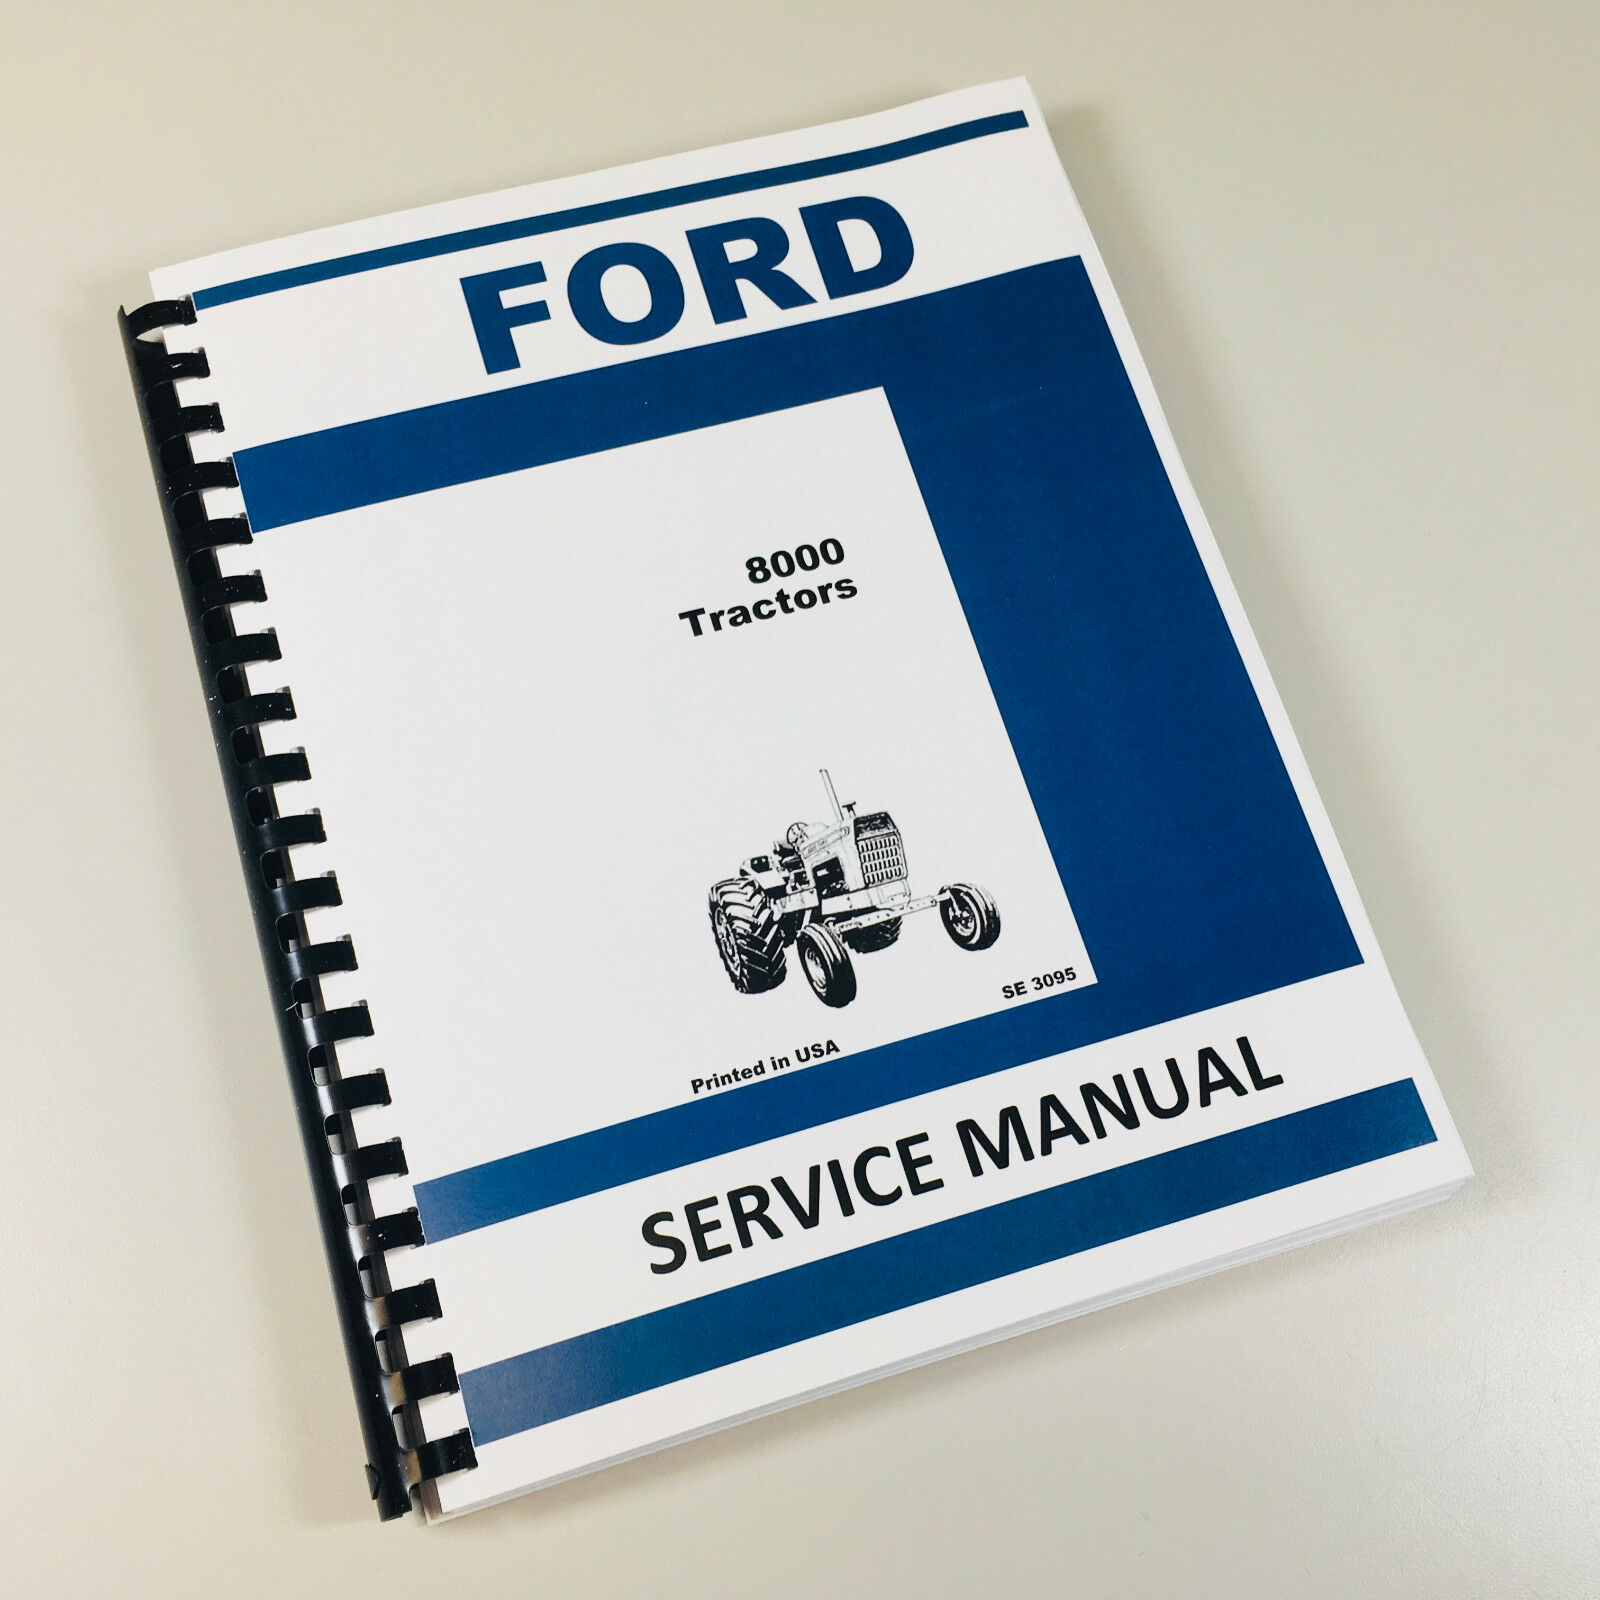 Ford 8000 Tractor Service Repair Shop Manual Technical New Oem Overhaul 1  of 7FREE Shipping See More